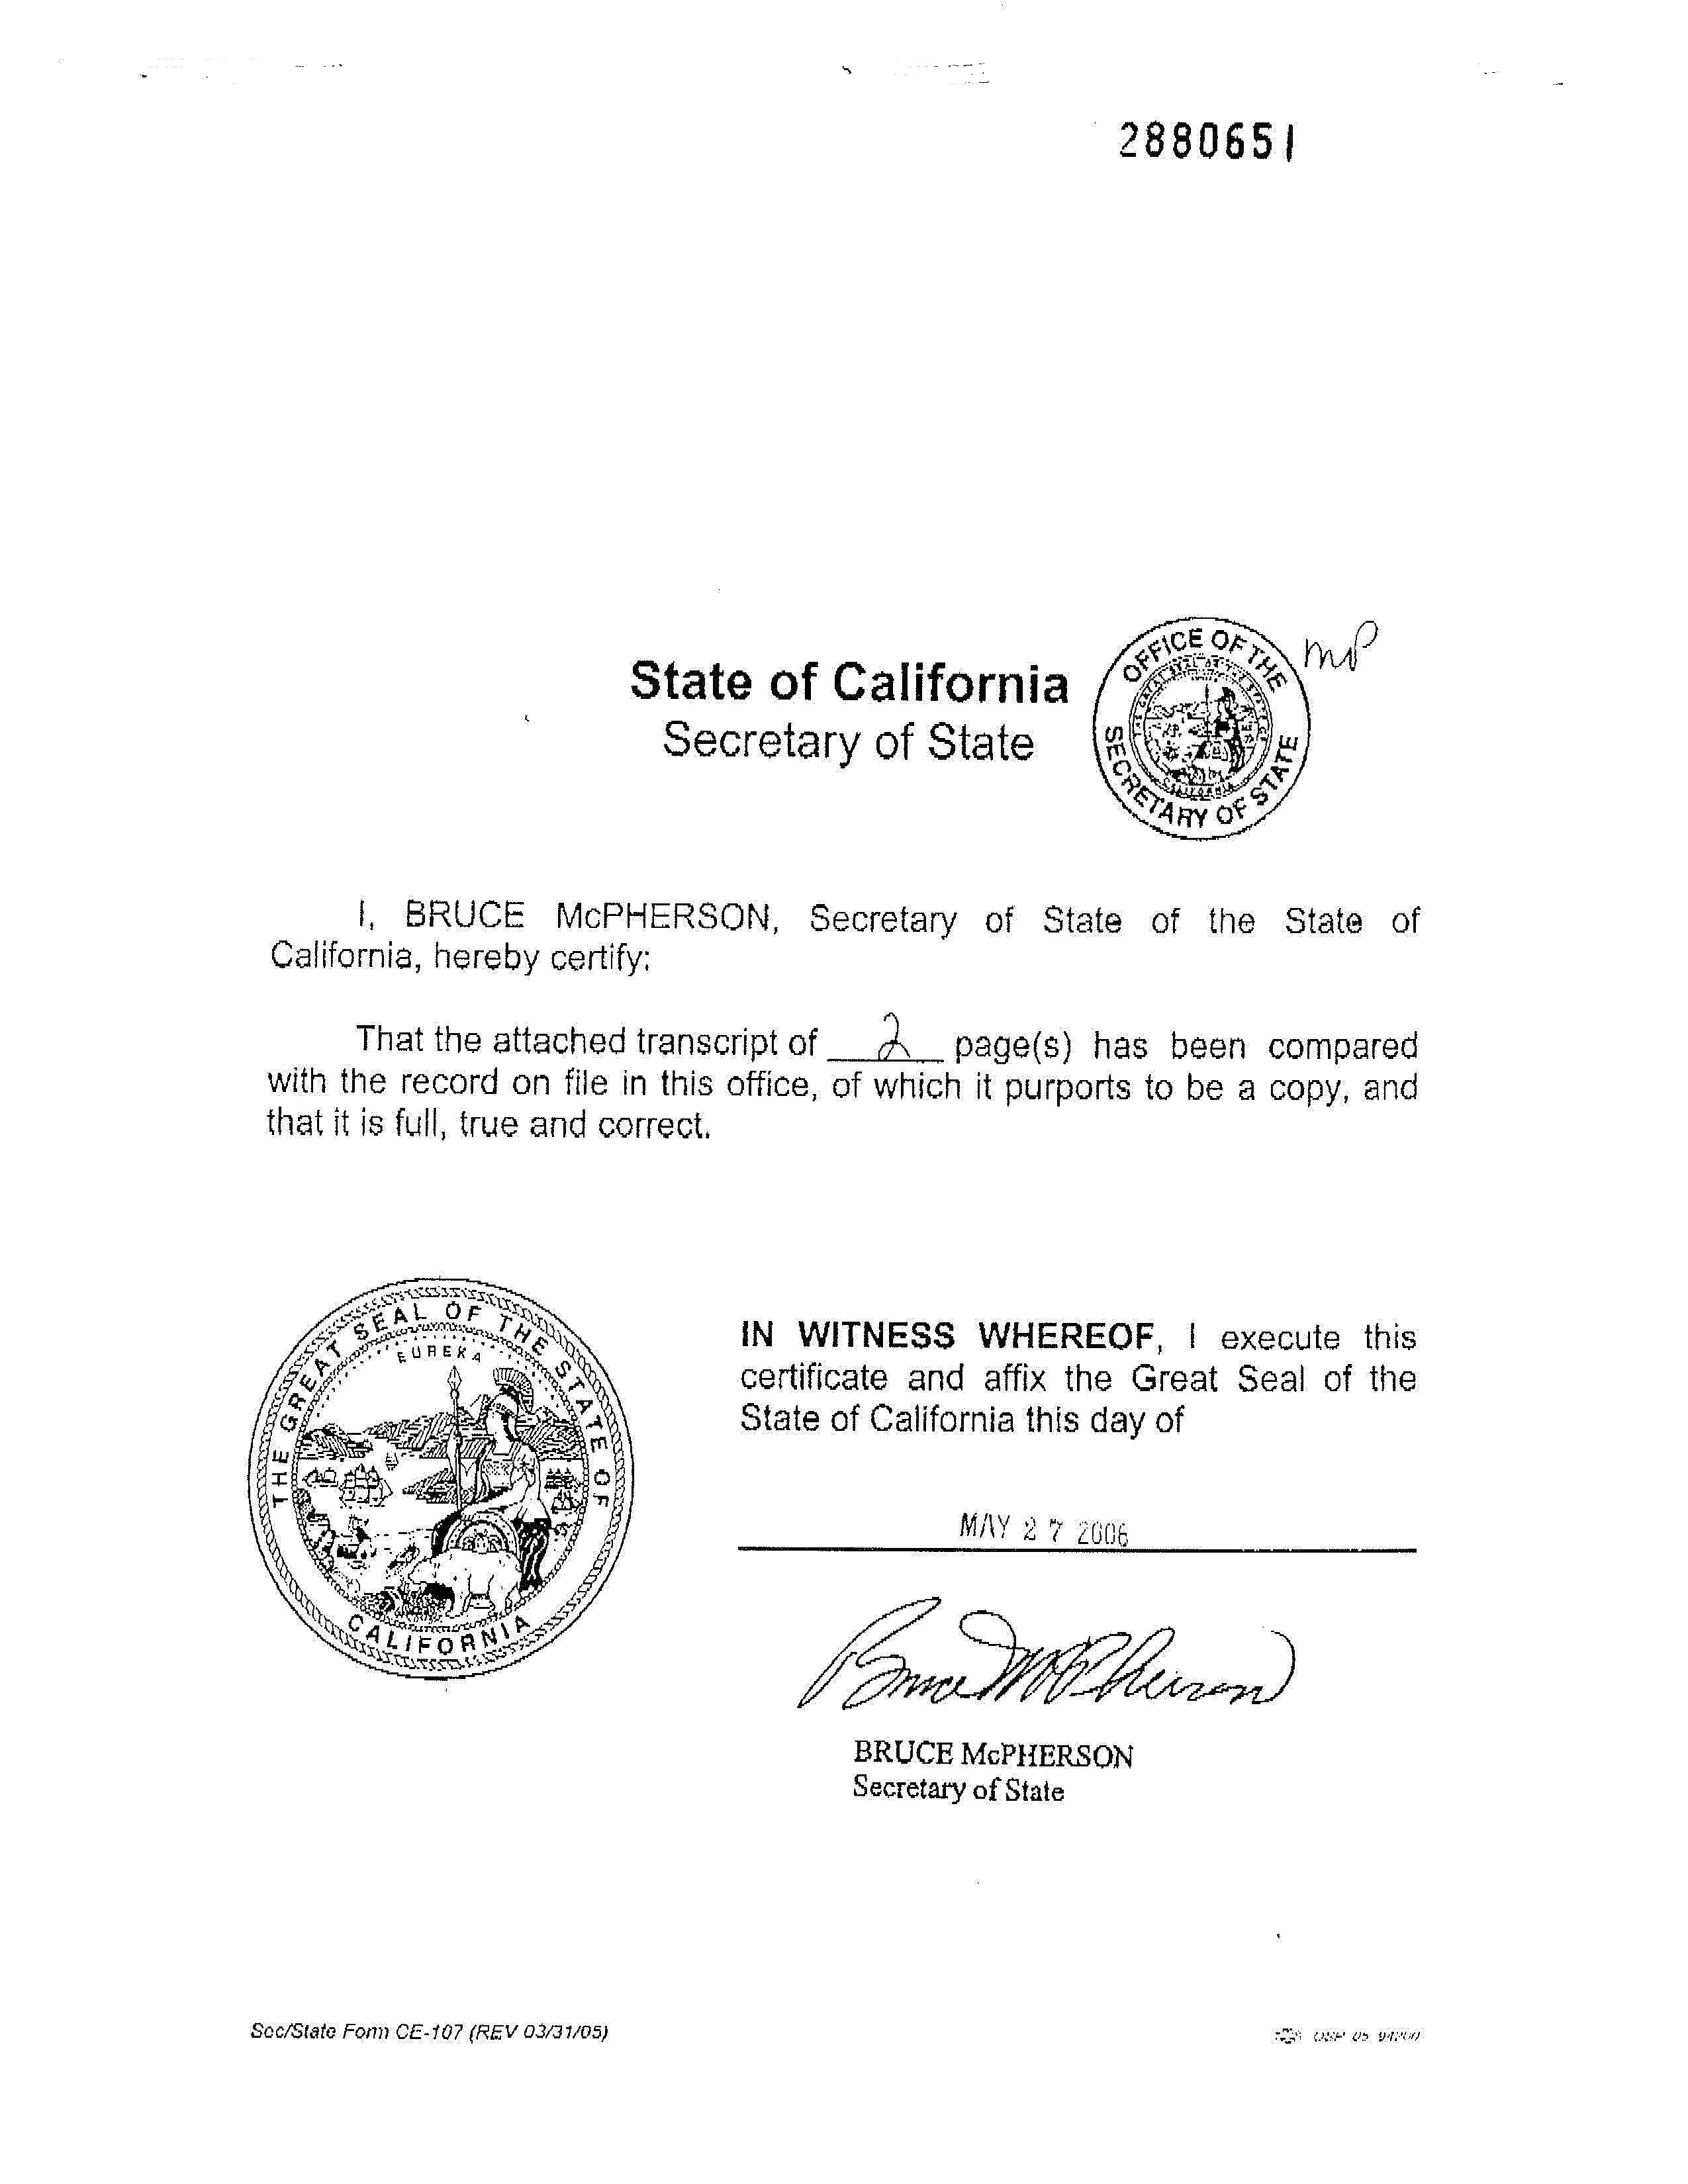 CETF Articles of Incorporation signed by California Secretary of State